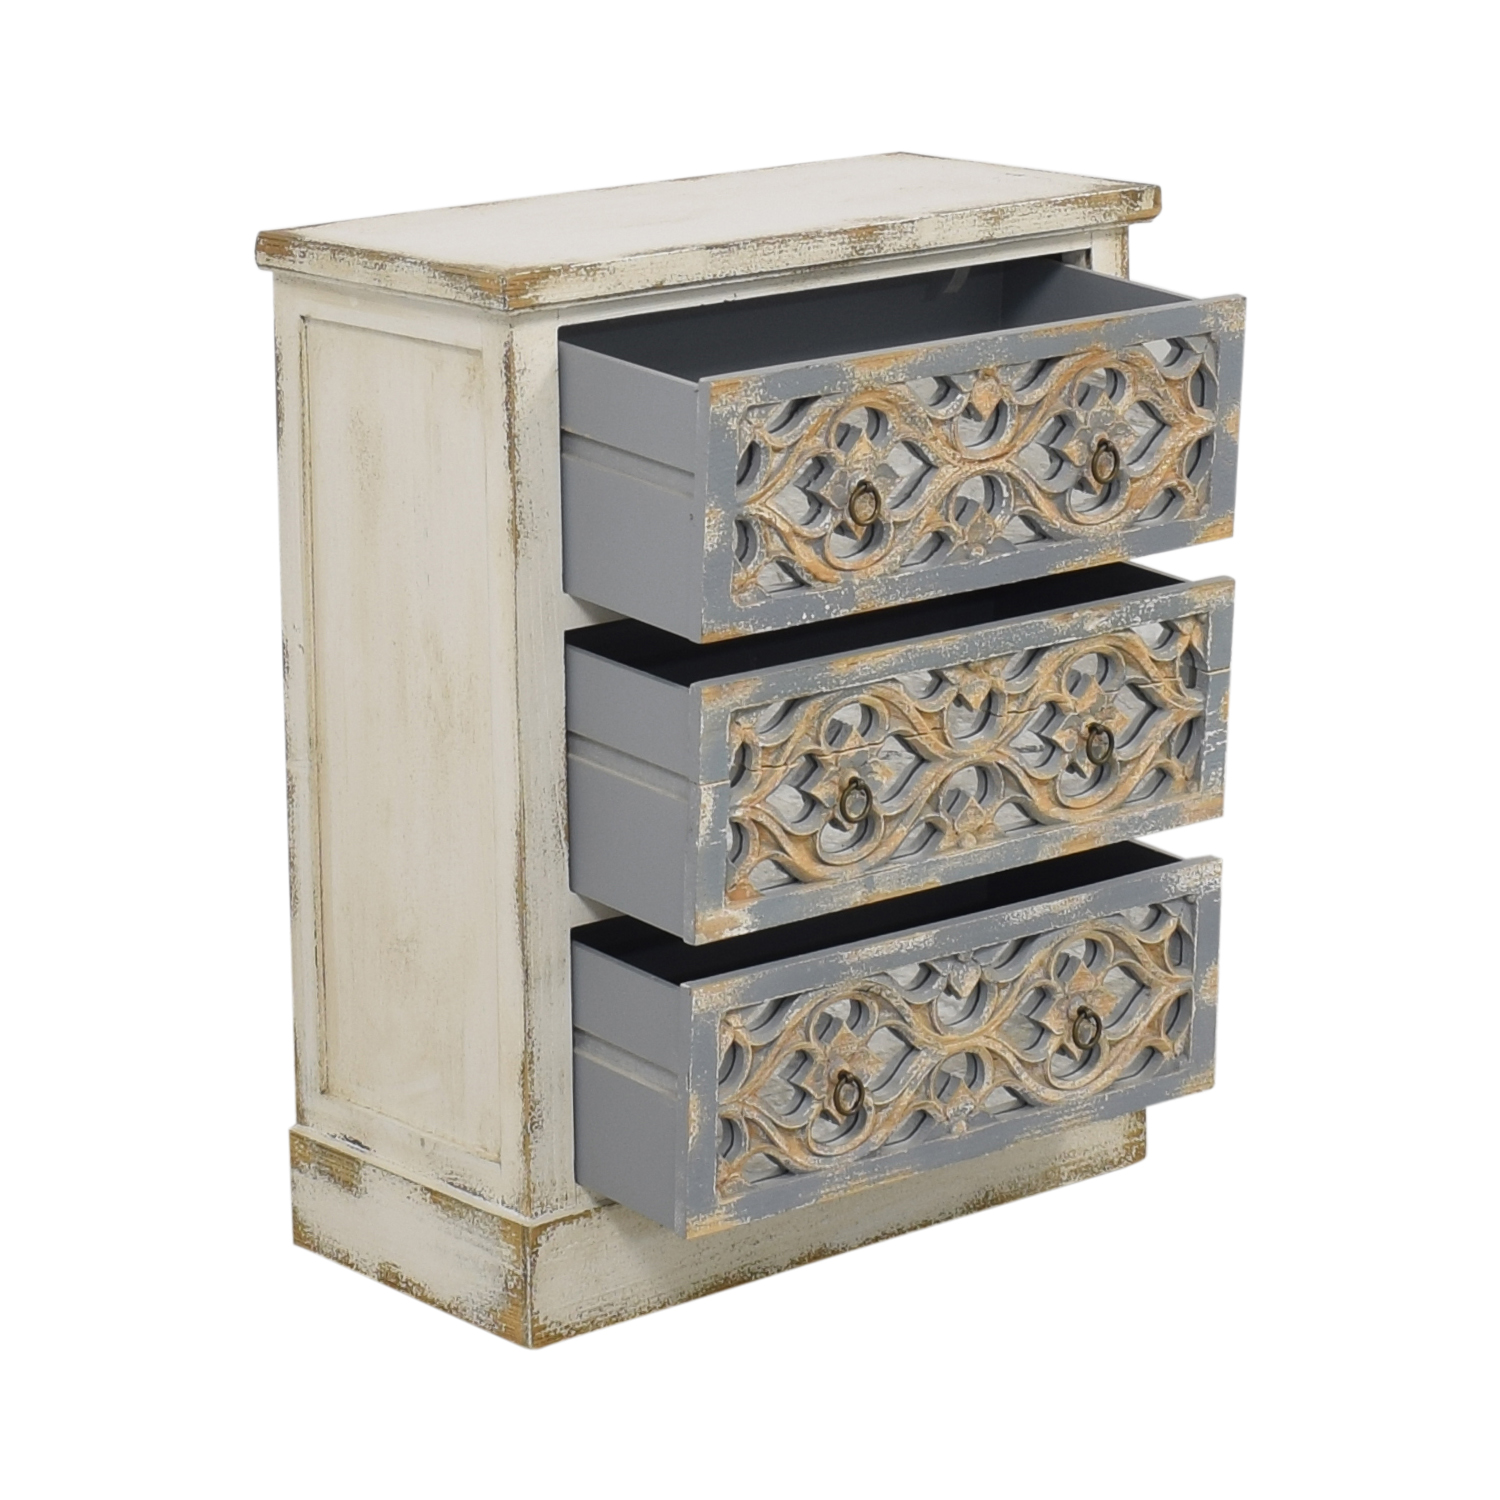 Pier 1 Pier 1 Cosette Antiqued Mirrored Chest coupon